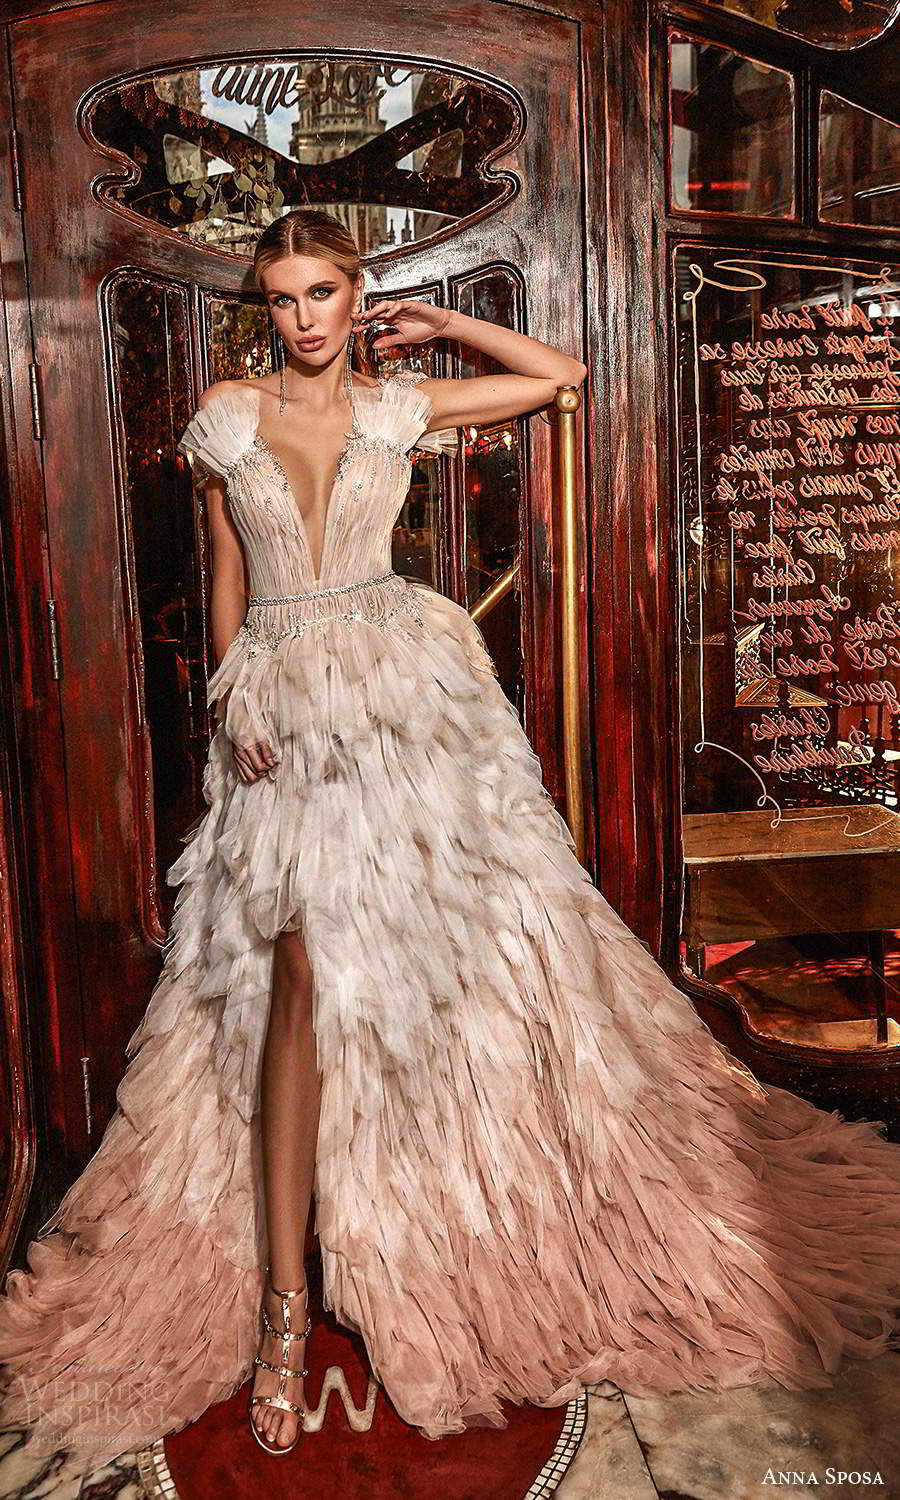 anna sposa 2021 couture bridal sleeveless thick straps plunging v neckline ruched bodice a line ball gown wedding dress tiered skirt chapel train (6) mv